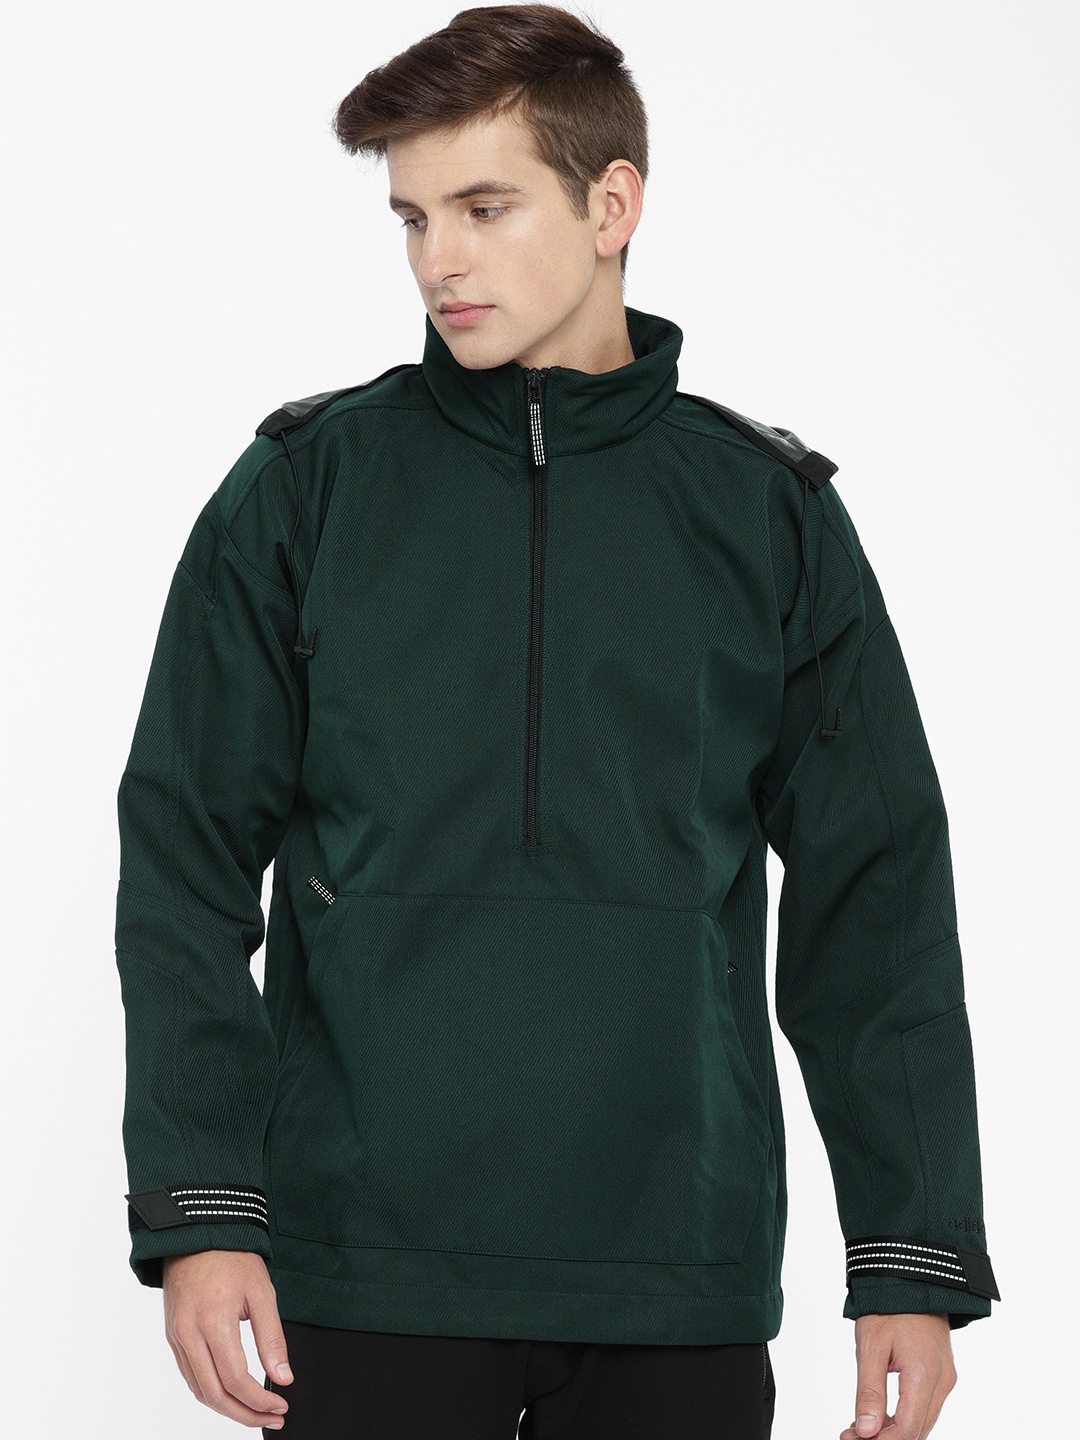 best service bc1e3 514a9 Adidas Solid Jacket - Buy Adidas Solid Jacket online in India